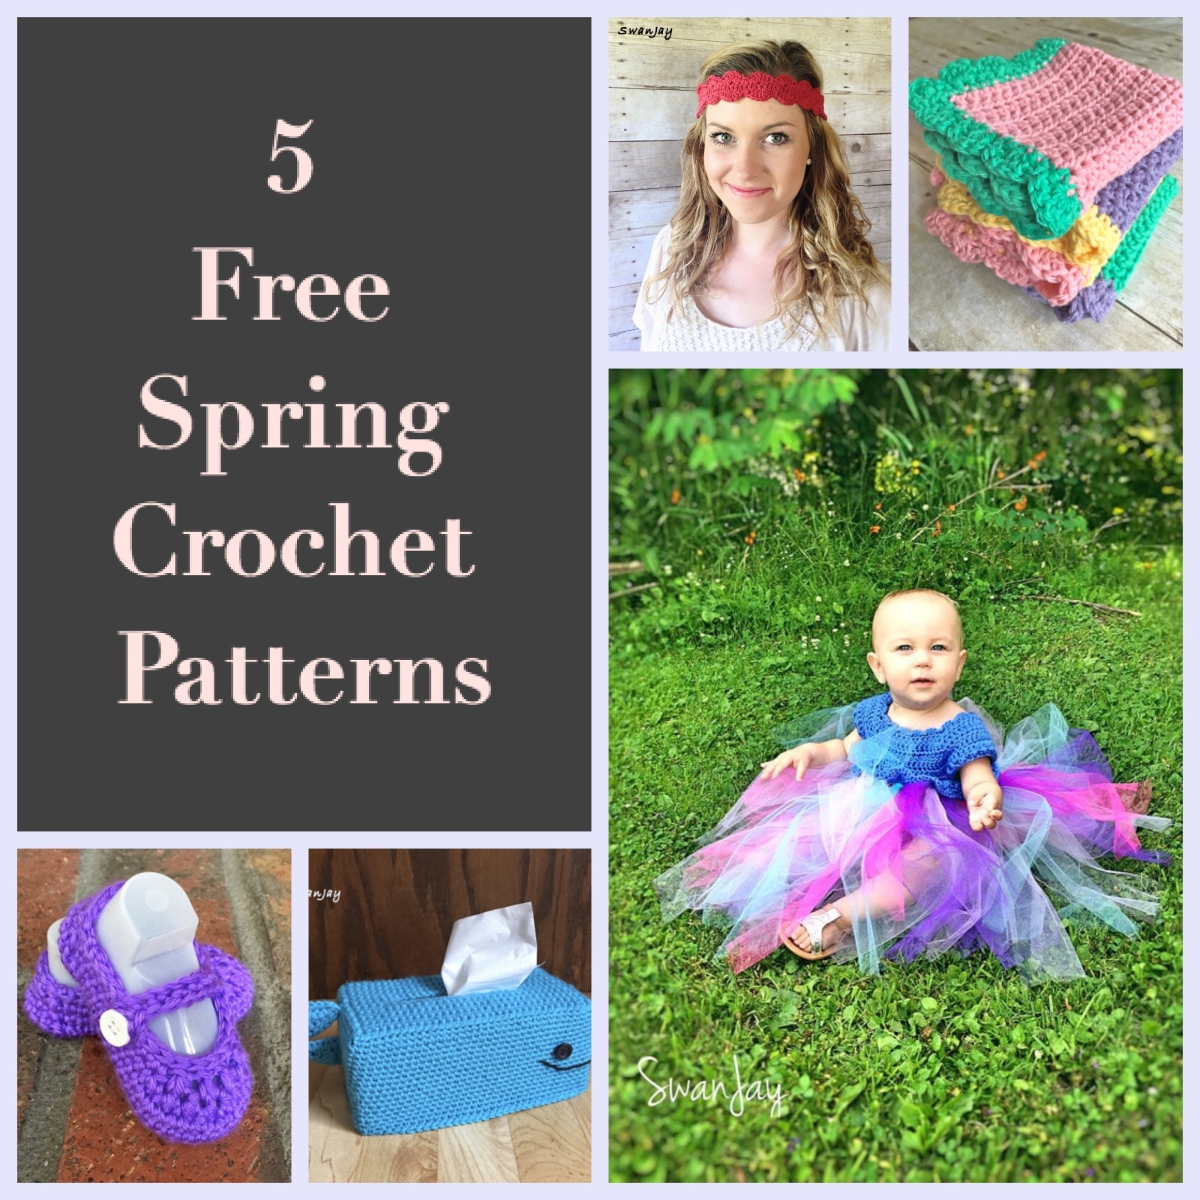 Five Things to Crochet in the Spring: Free Pattern Roundup